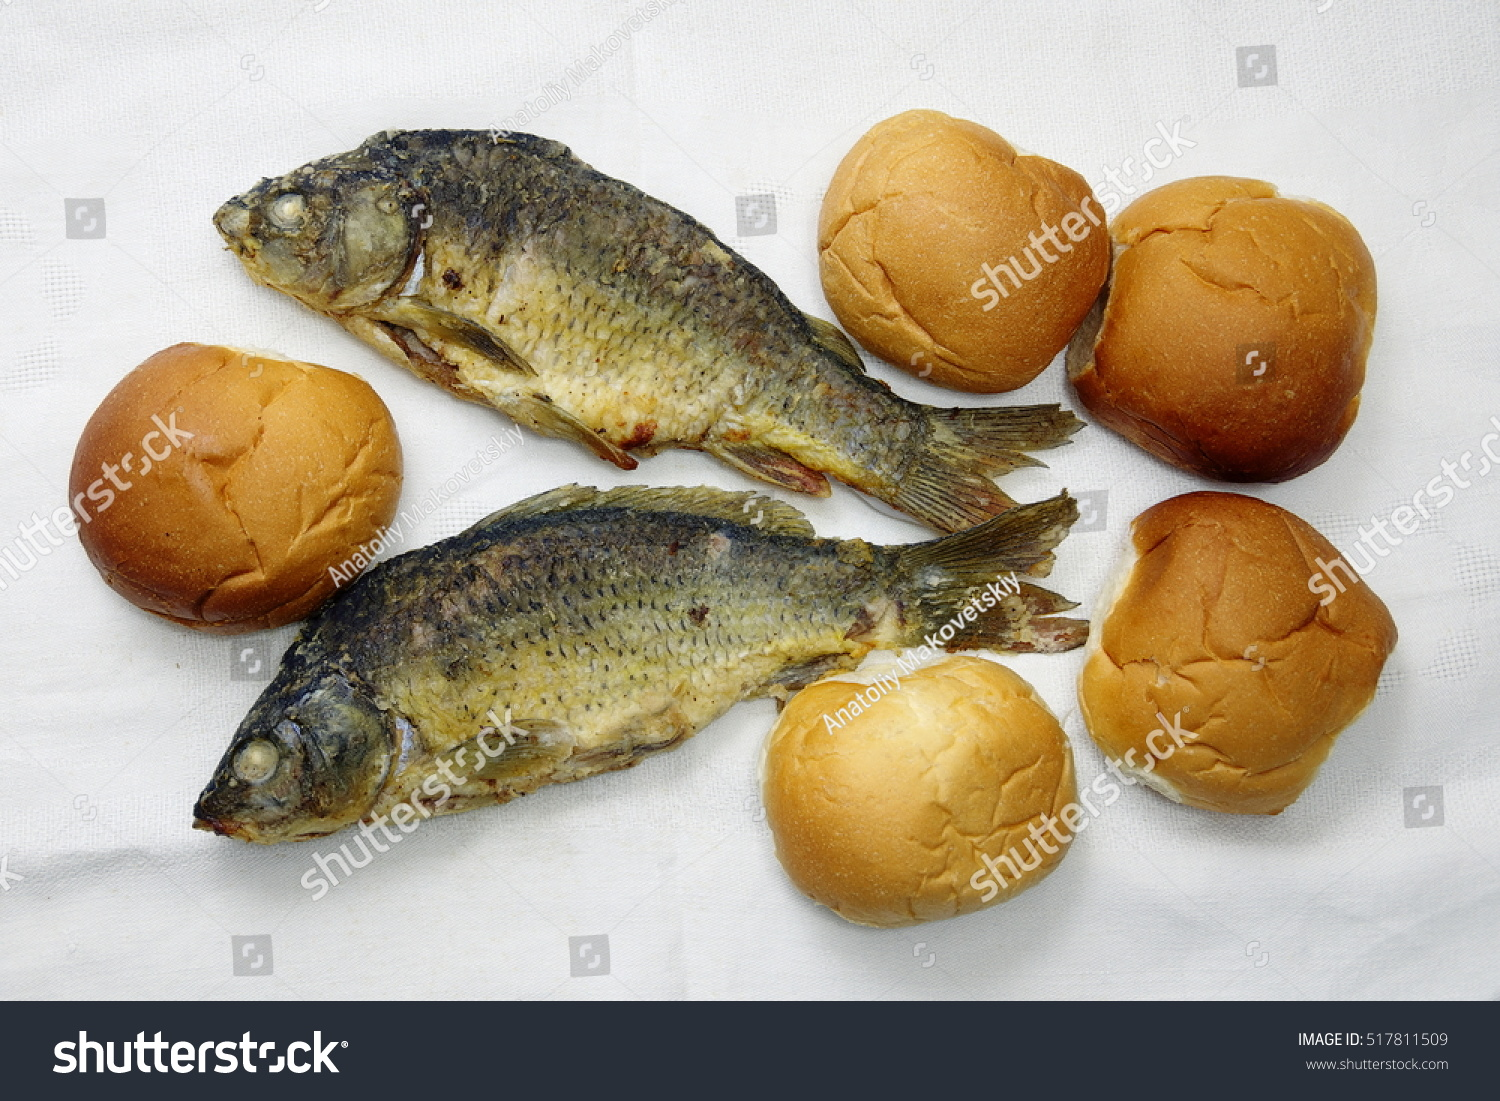 Five loaves two fishes stock photo 517811509 shutterstock for Loaves and fish